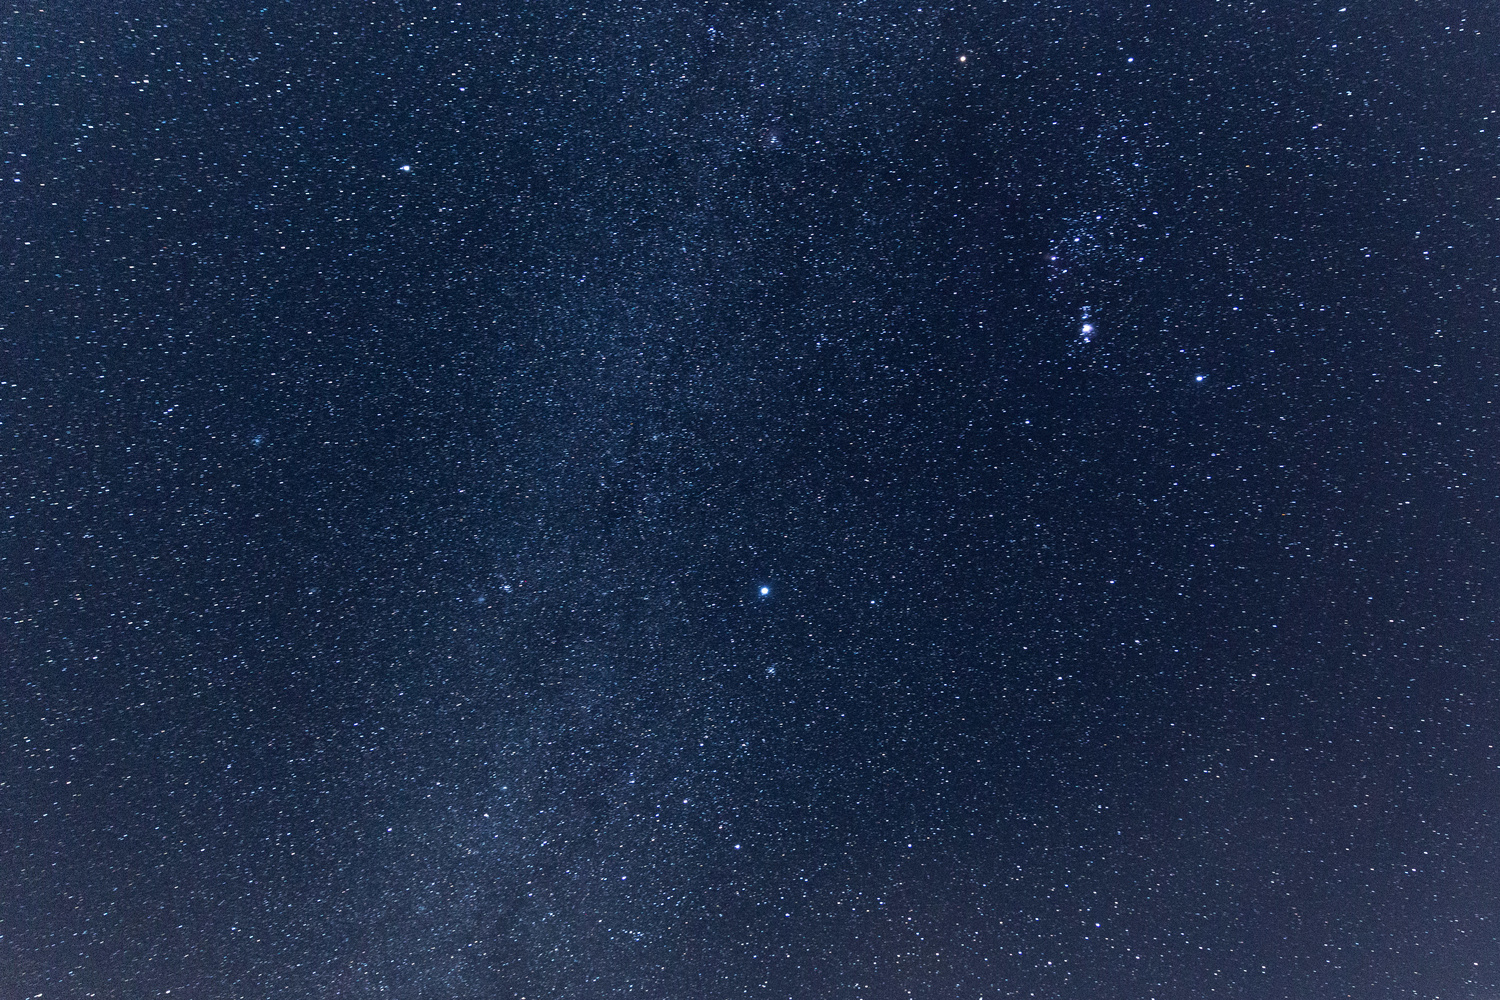 Adding Stars To Your Nighttime Photography Fstoppers